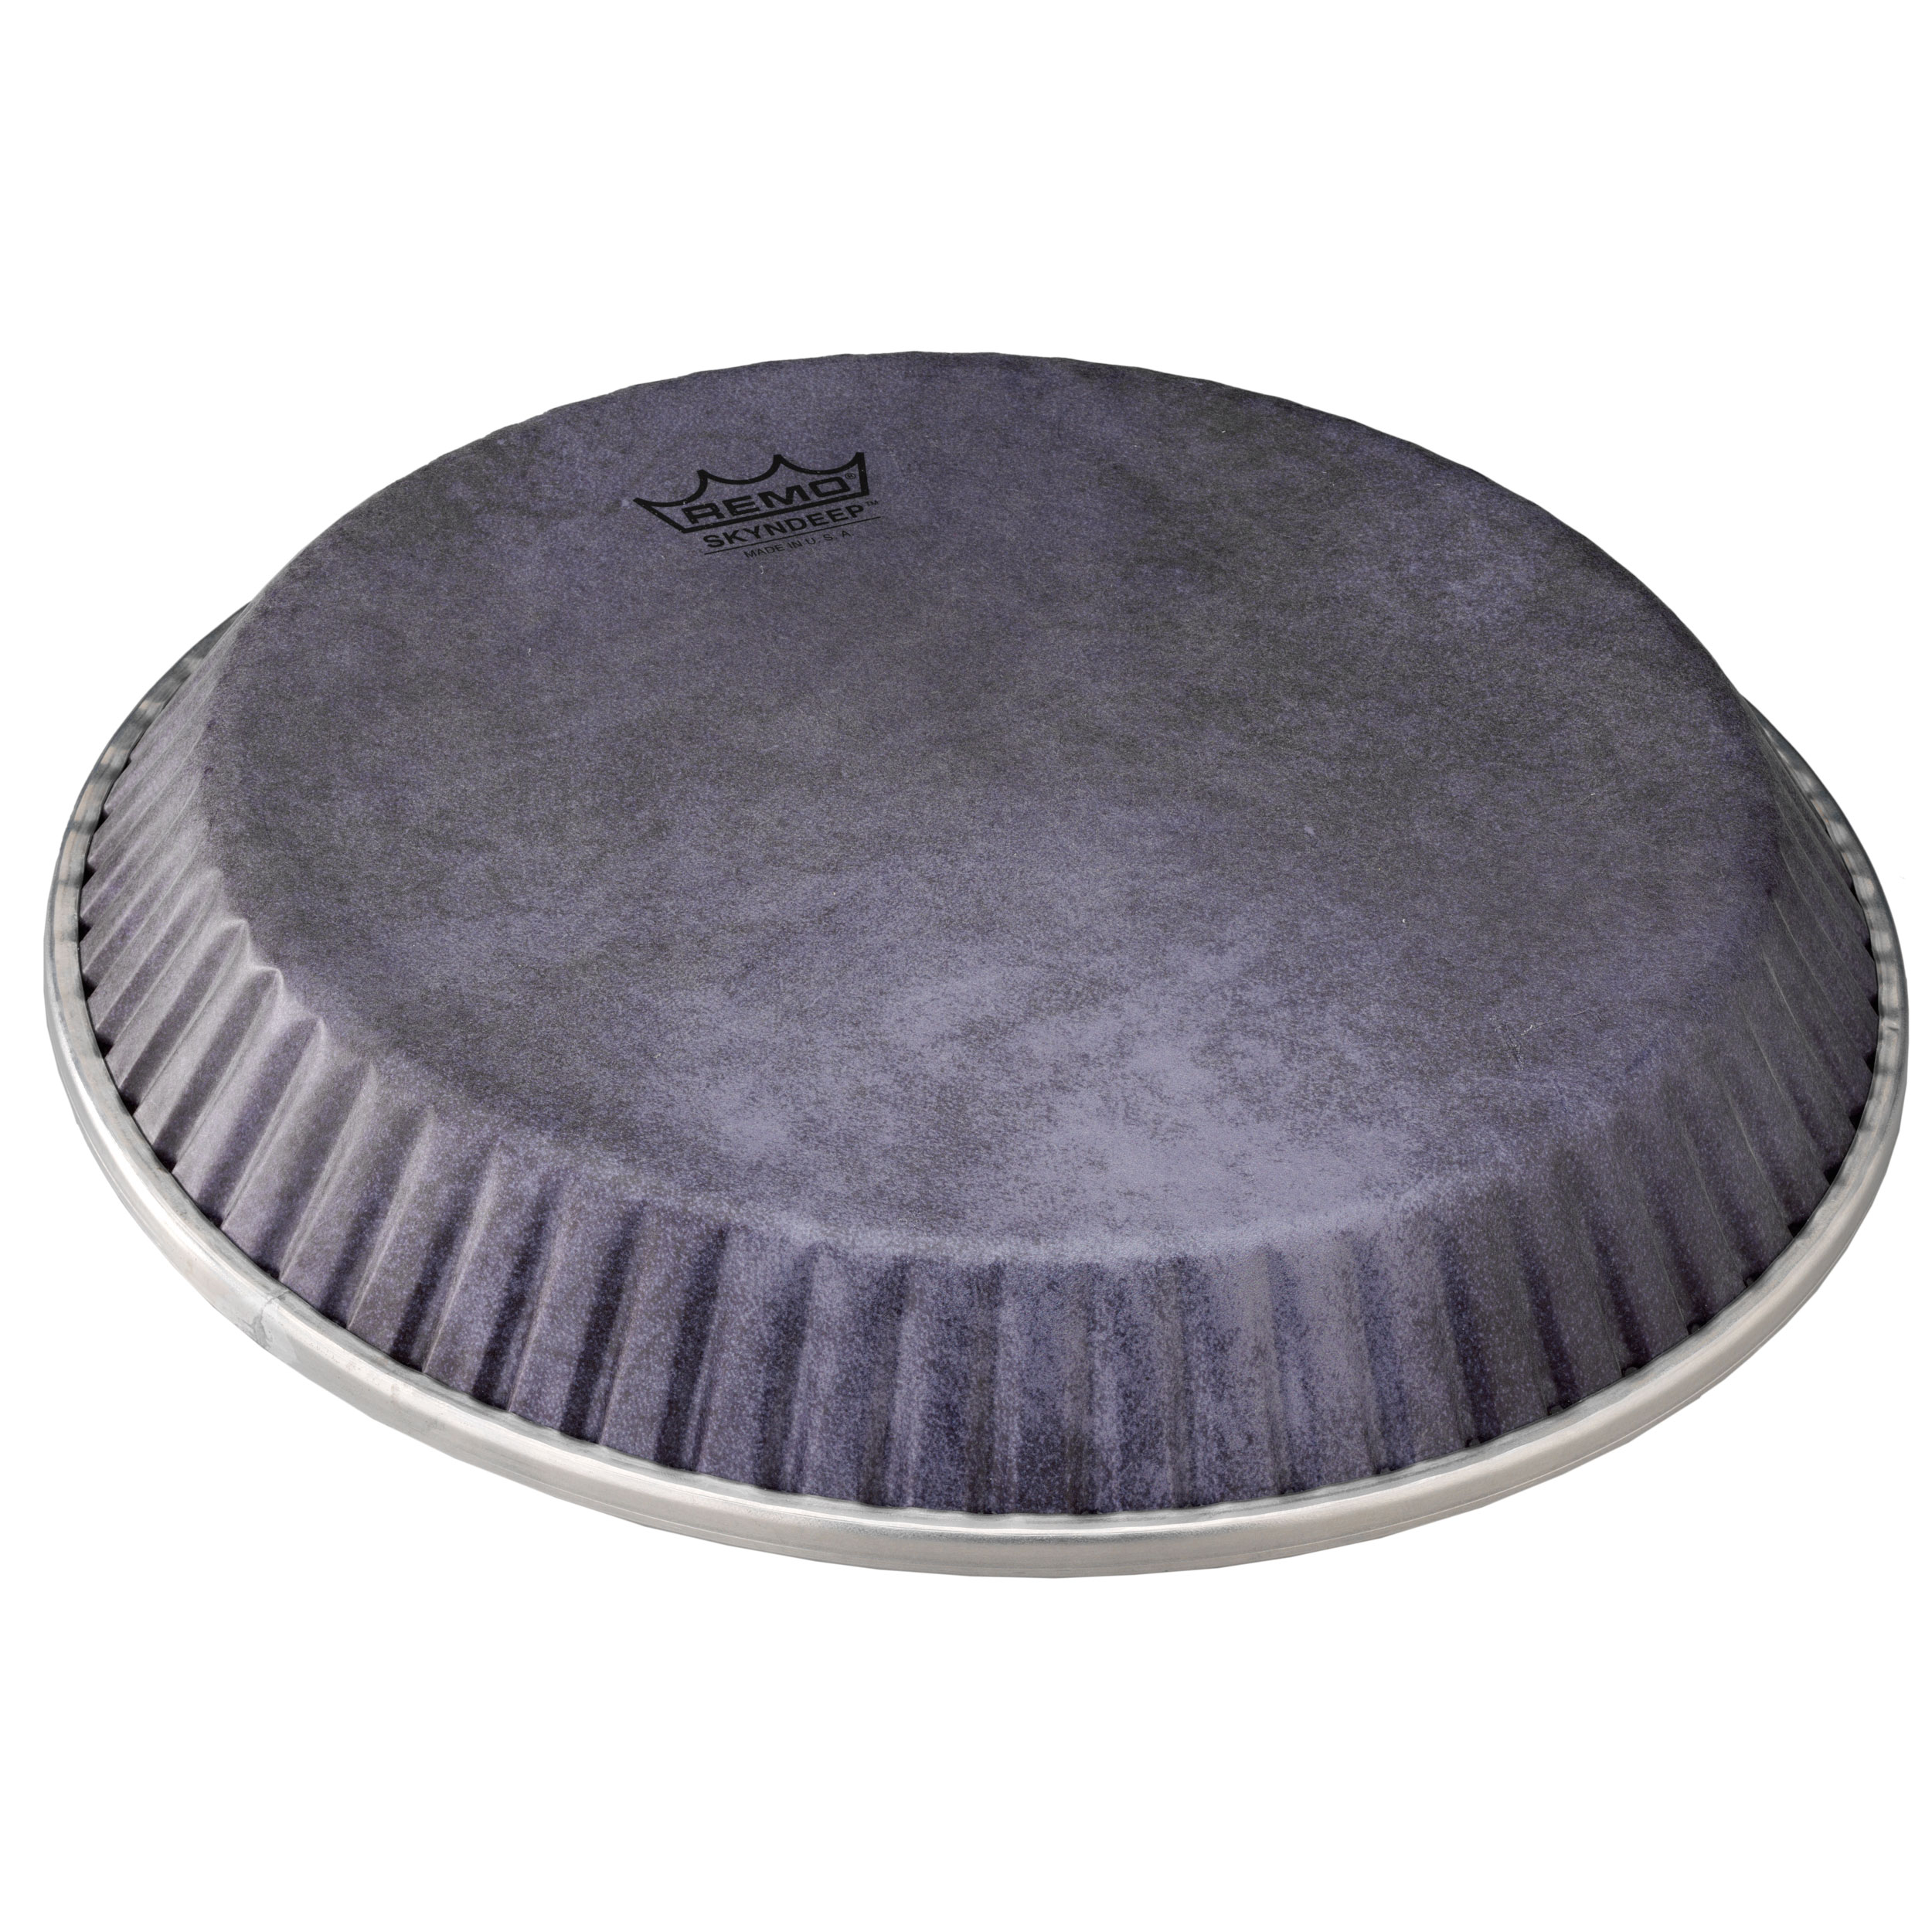 """Remo 11.75"""" Symmetry Skyndeep Conga Drum Head (D3 Collar) with Black Calfskin Graphic"""